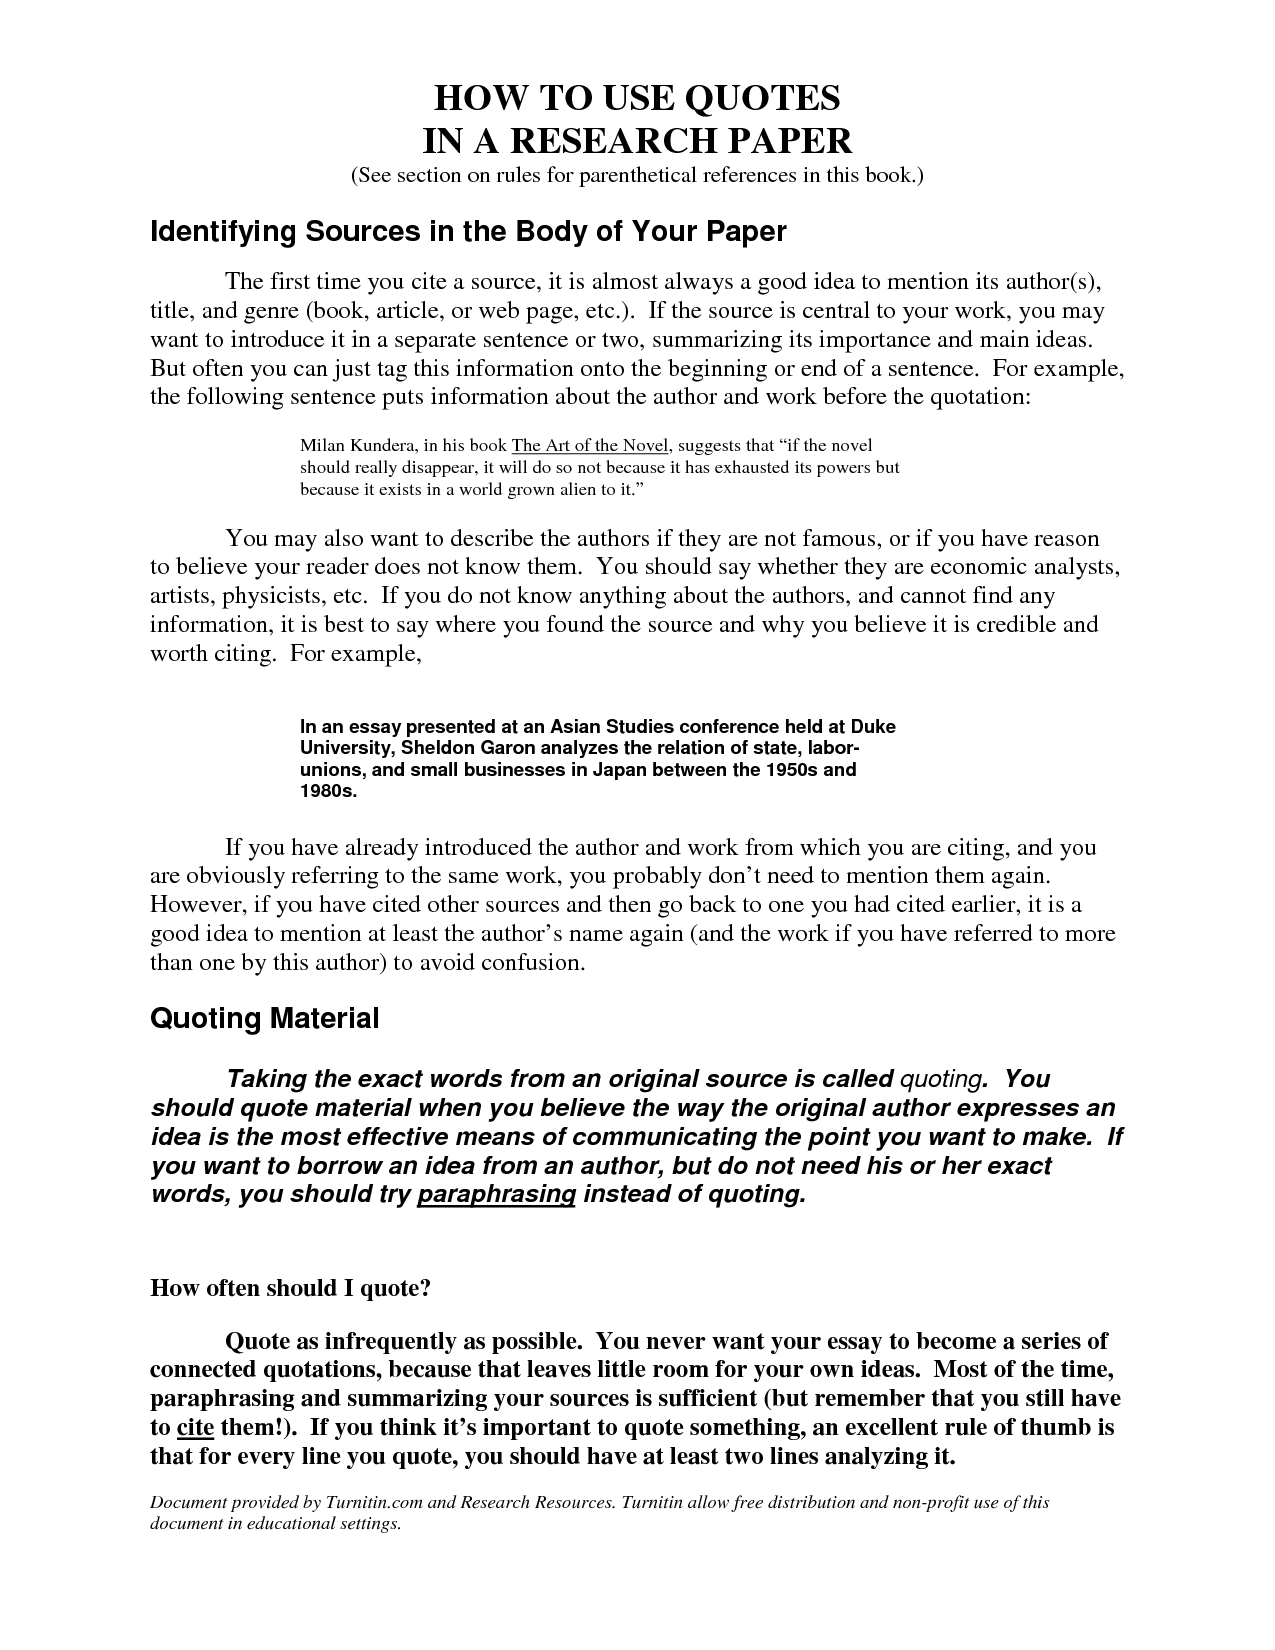 011 Best Solutions Of Writing Quotes In Essays Marvelous Embedding On Quotestopics Essay Example How To Quote Book Formidable A An Apa Style With Multiple Authors Full